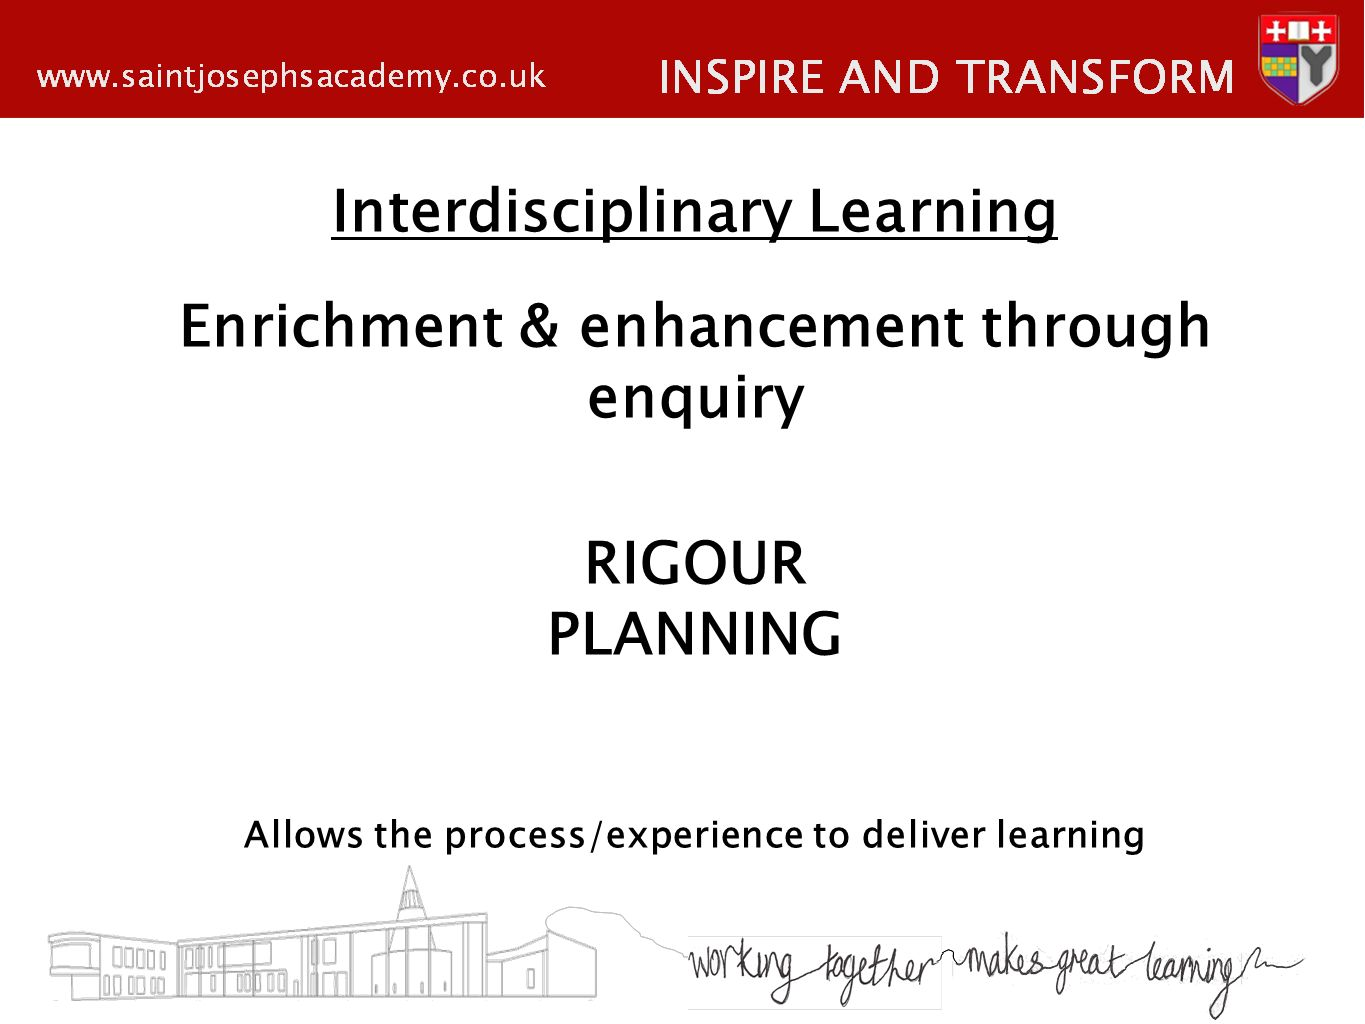 Interdisciplinary Learning Enrichment & enhancement through enquiry RIGOUR PLANNING Allows the process/experience to deliver learning